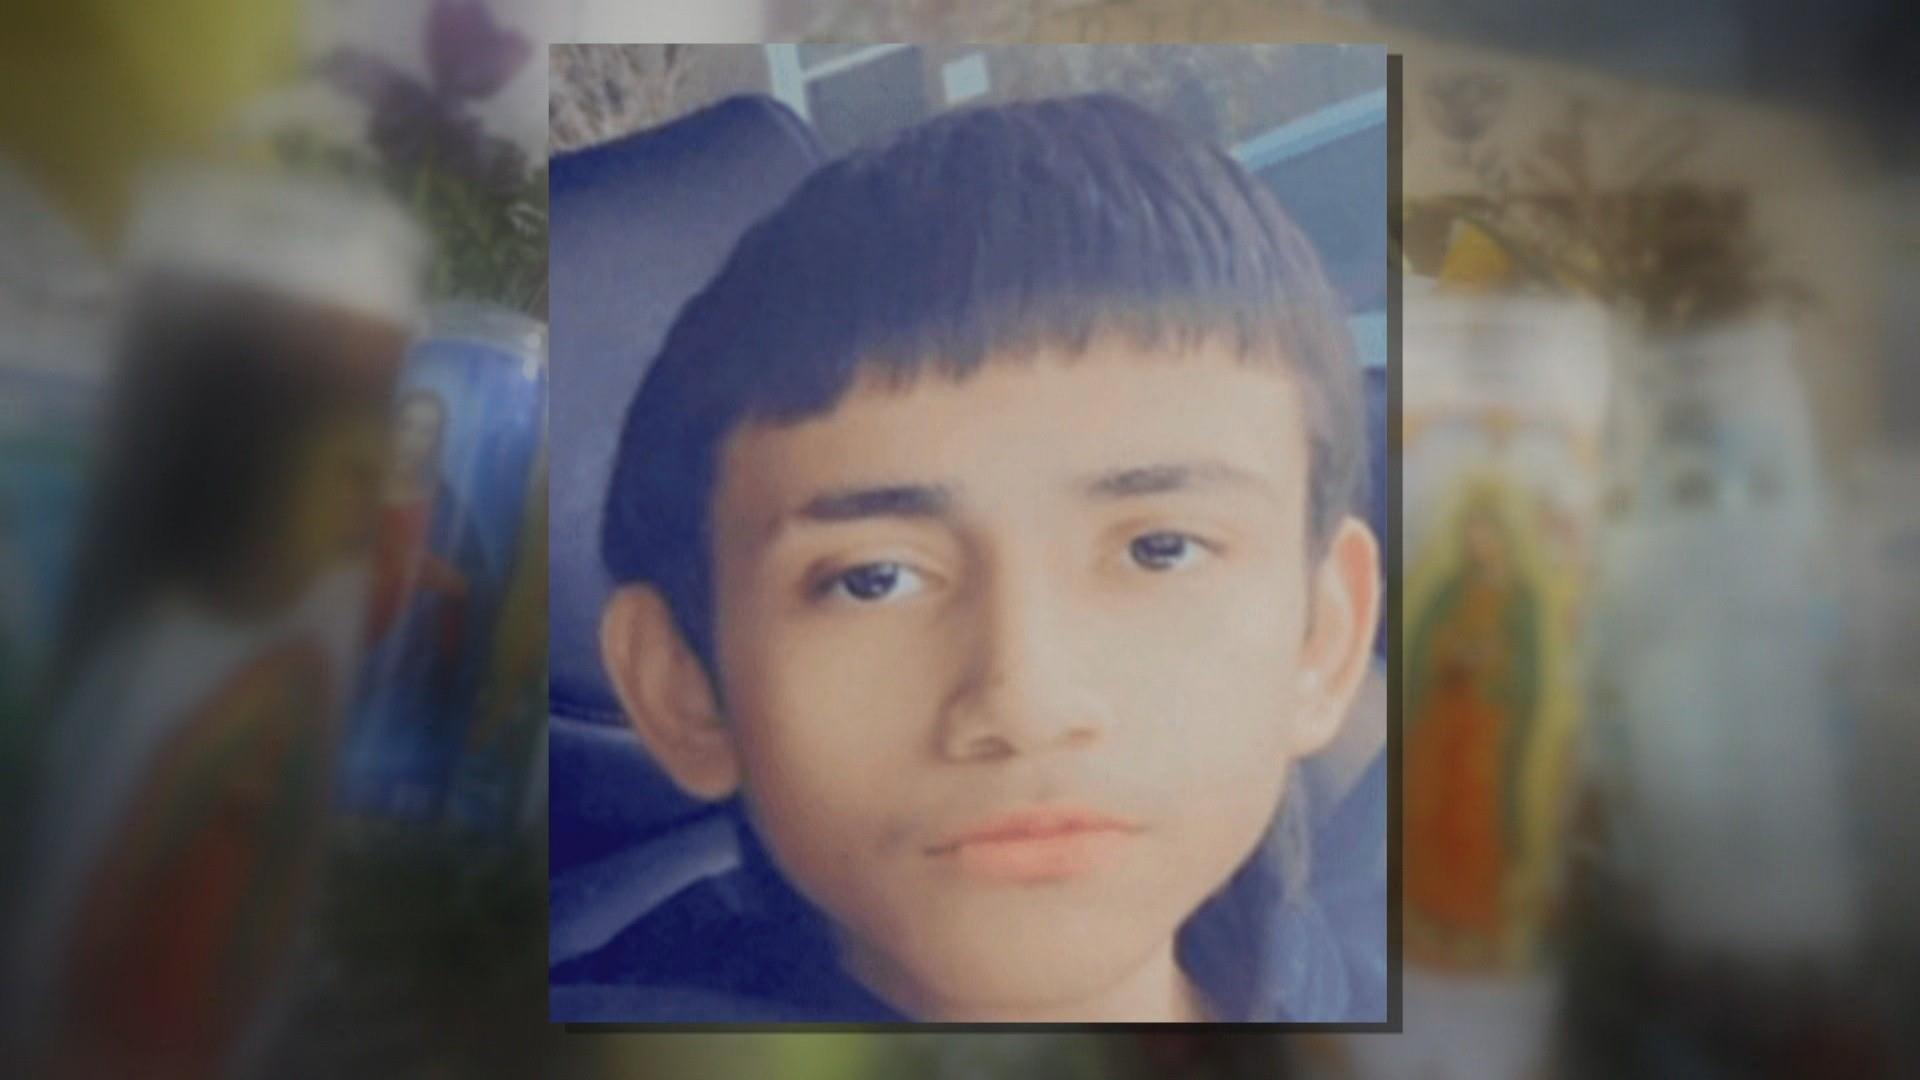 Video Of Fatal Chicago Police Shooting Of 13 Year Old Adam Toledo Released